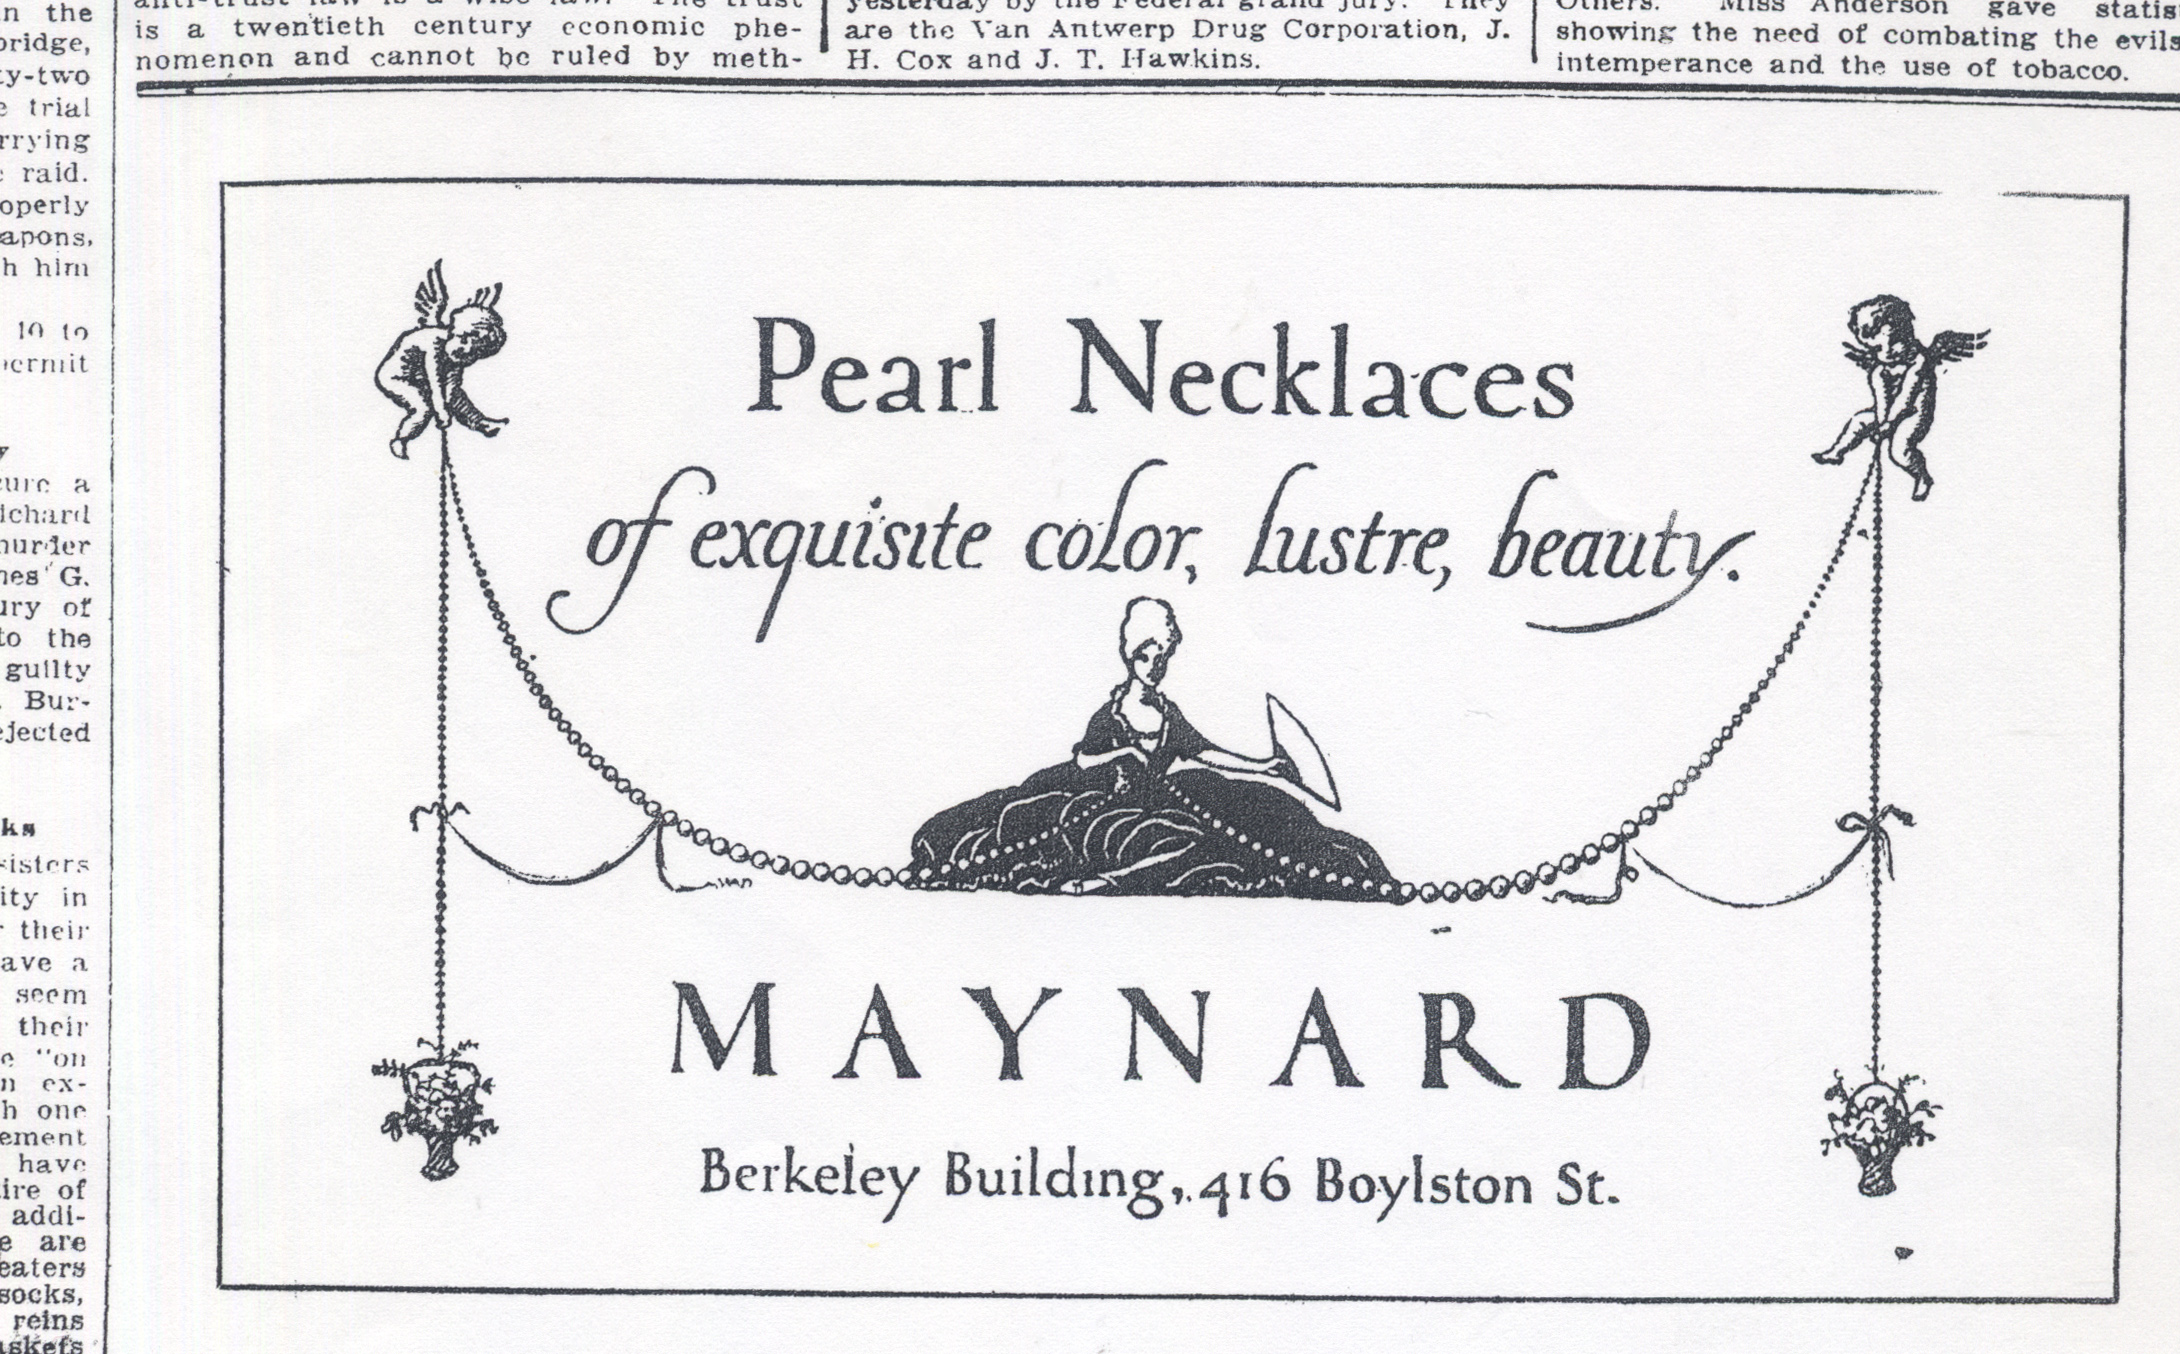 """""""Pearl Necklaces of exquisite color, lustre, beauty."""" advertisement for Maynard & Co. in the Boston Evening Transcript, December 3, 1912. Illustration and lettering by W.A. Dwiggins."""